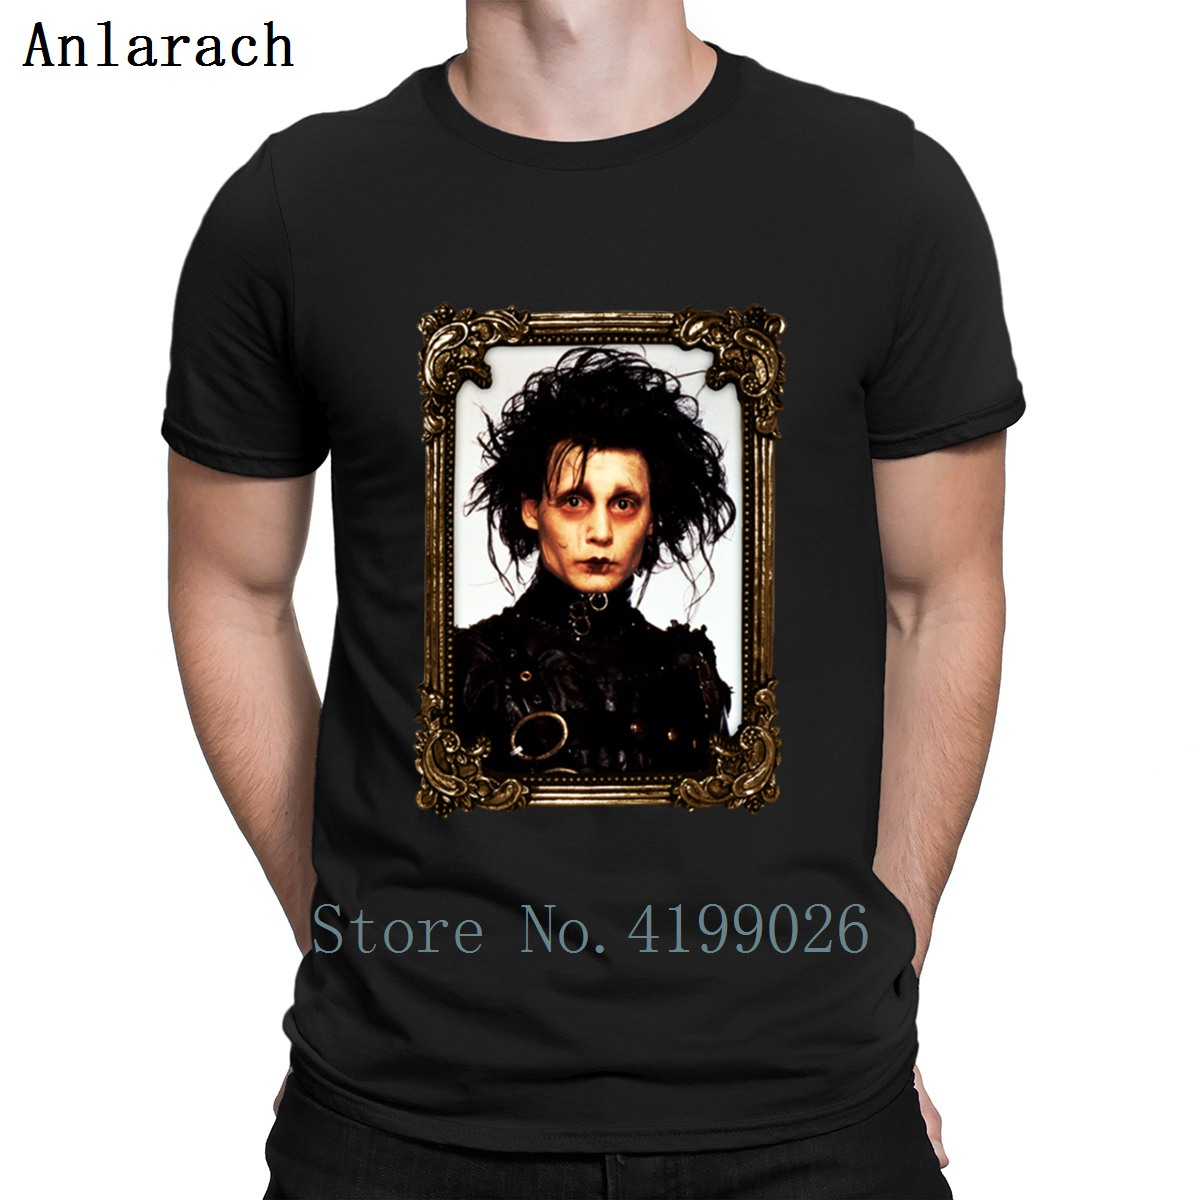 Edward Scissorhands T Shirt Natural Websites Designs Classic Mens T Shirts S-3xl Anti-Wrinkle Basic Solid Summer Style Funky image